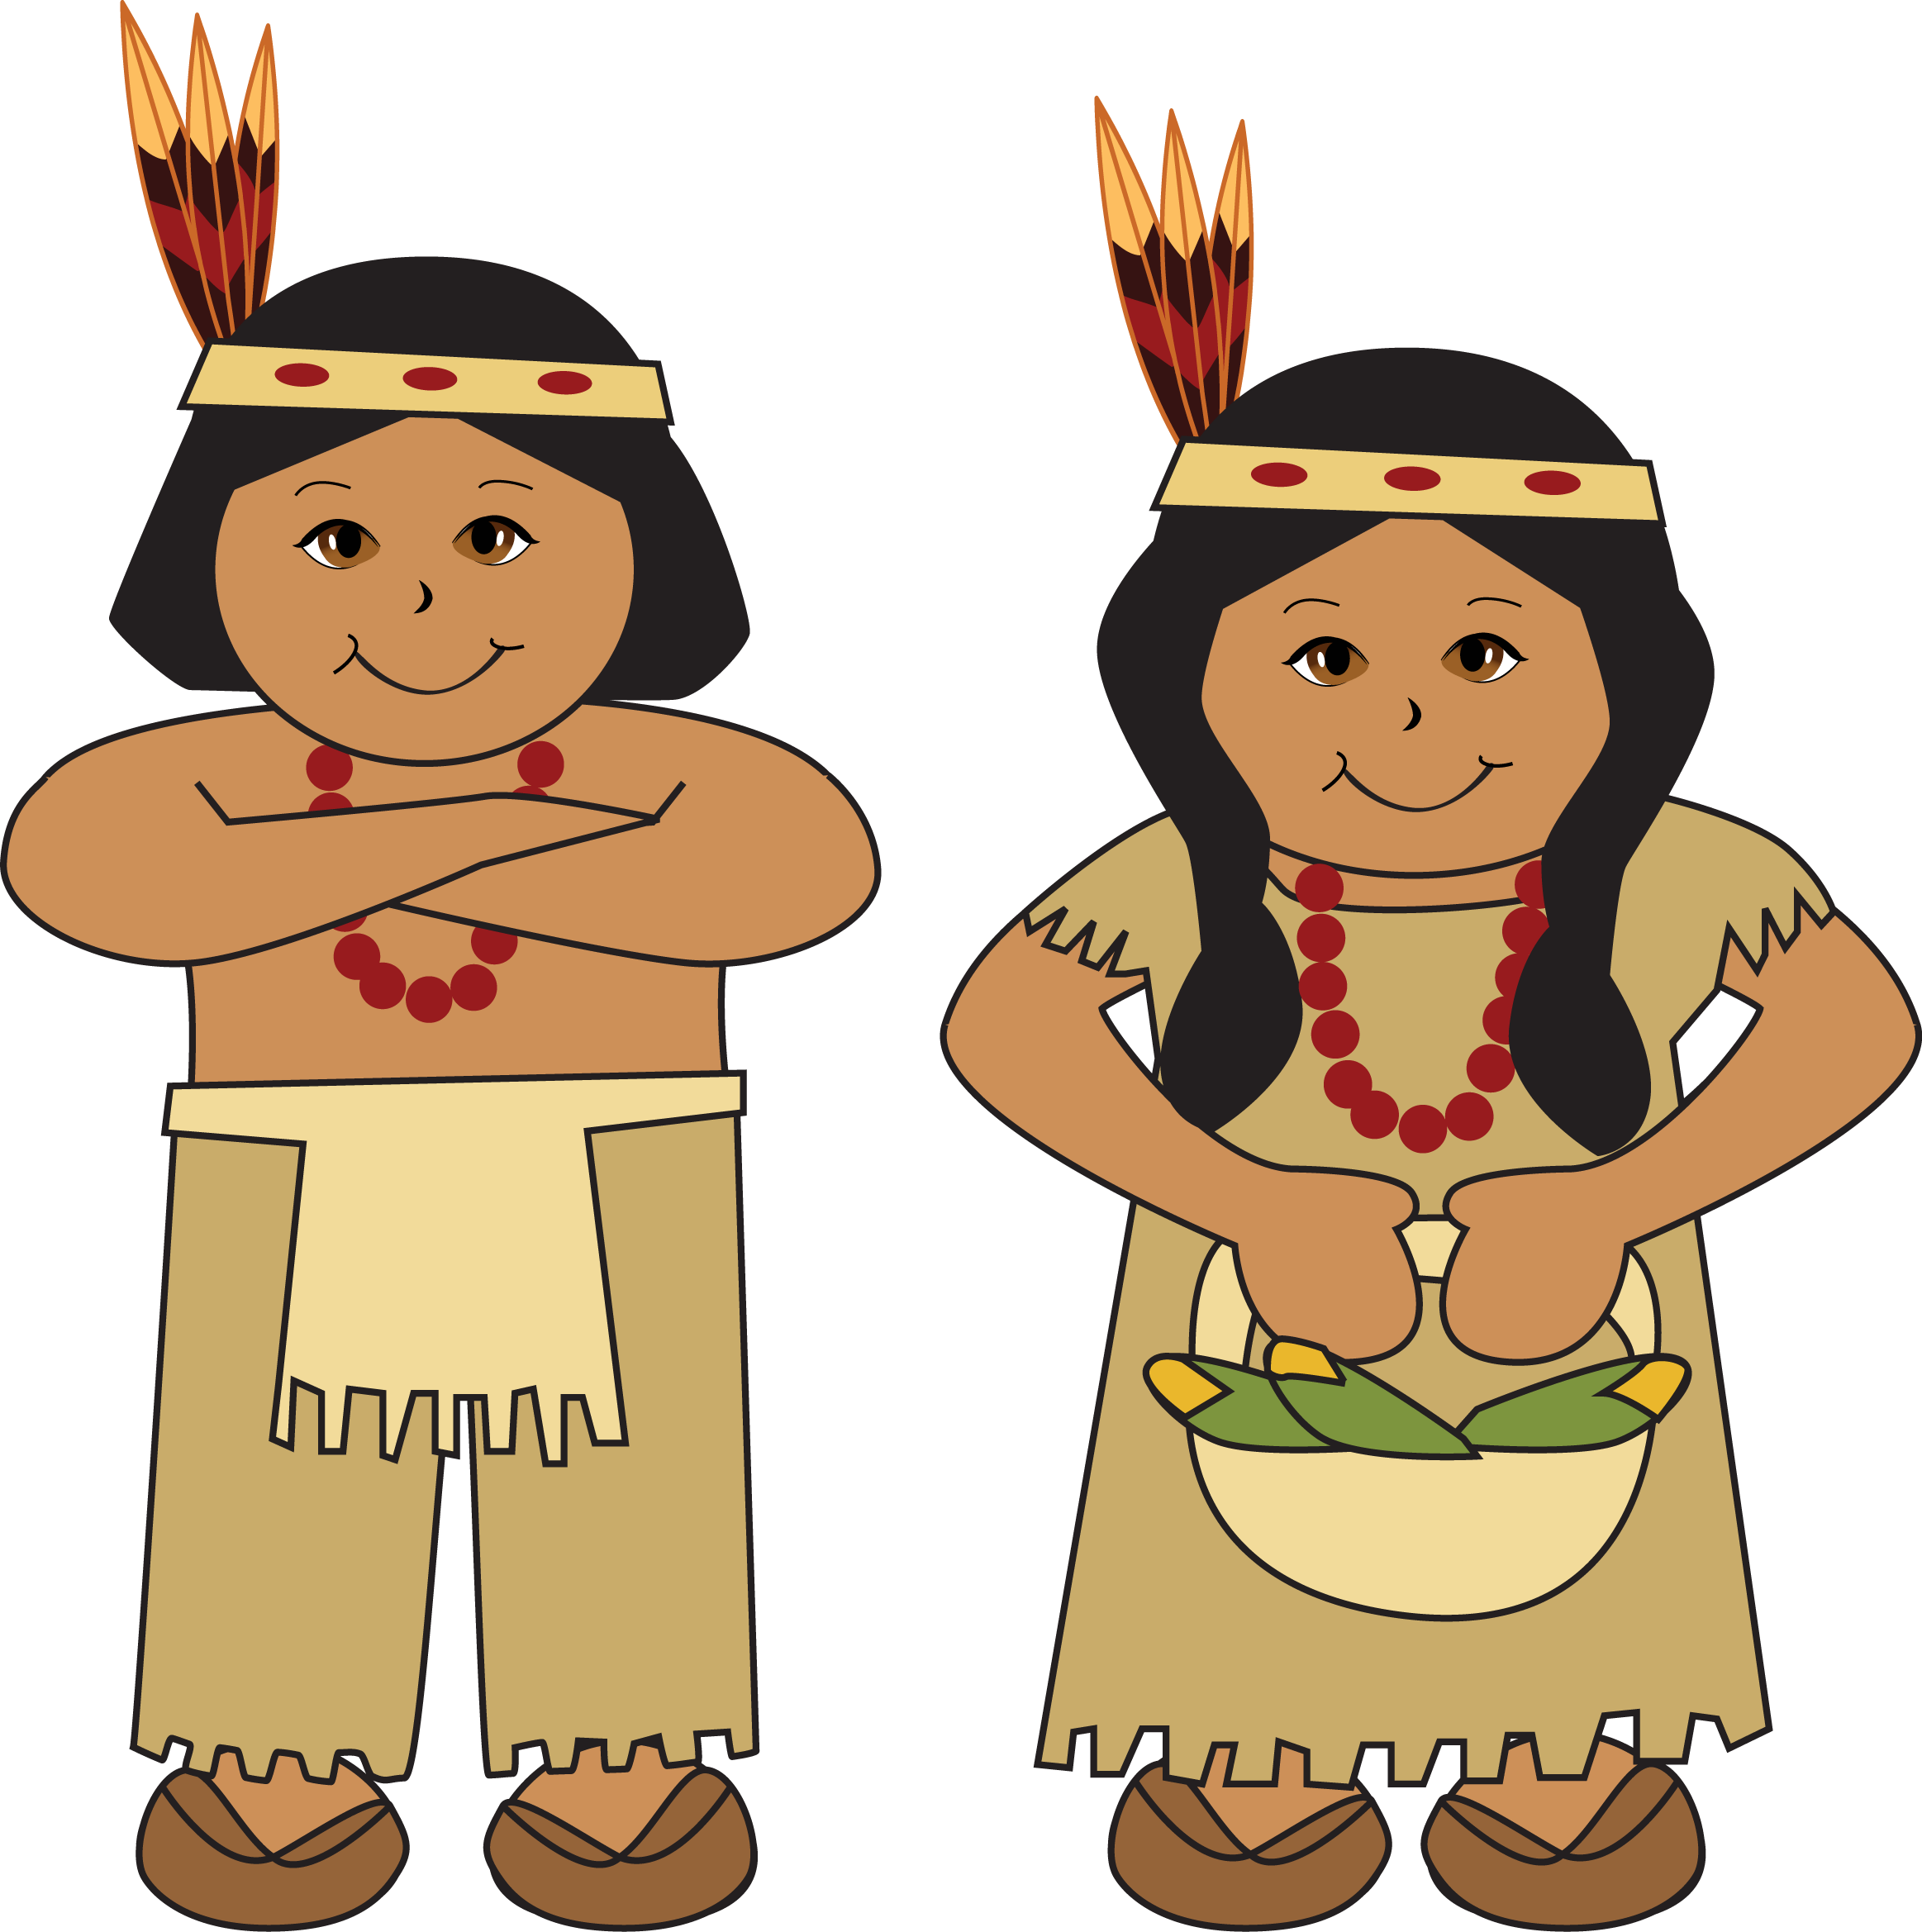 Indian clipart school kid And indians kid india clipground